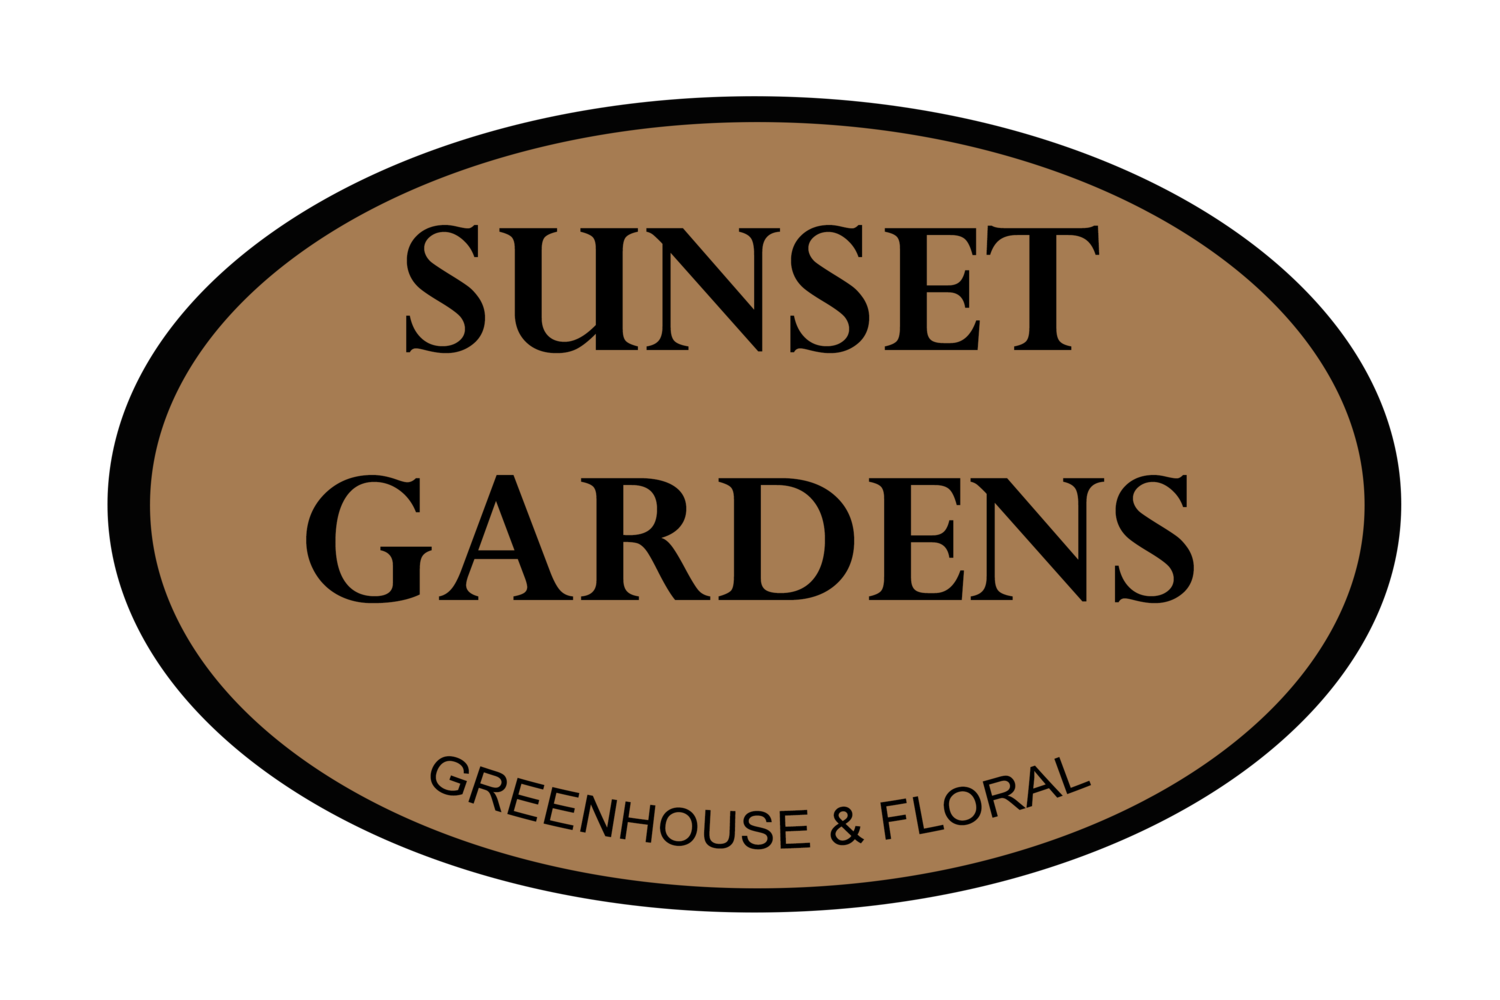 Sunset Gardens Greenhouse & Floral